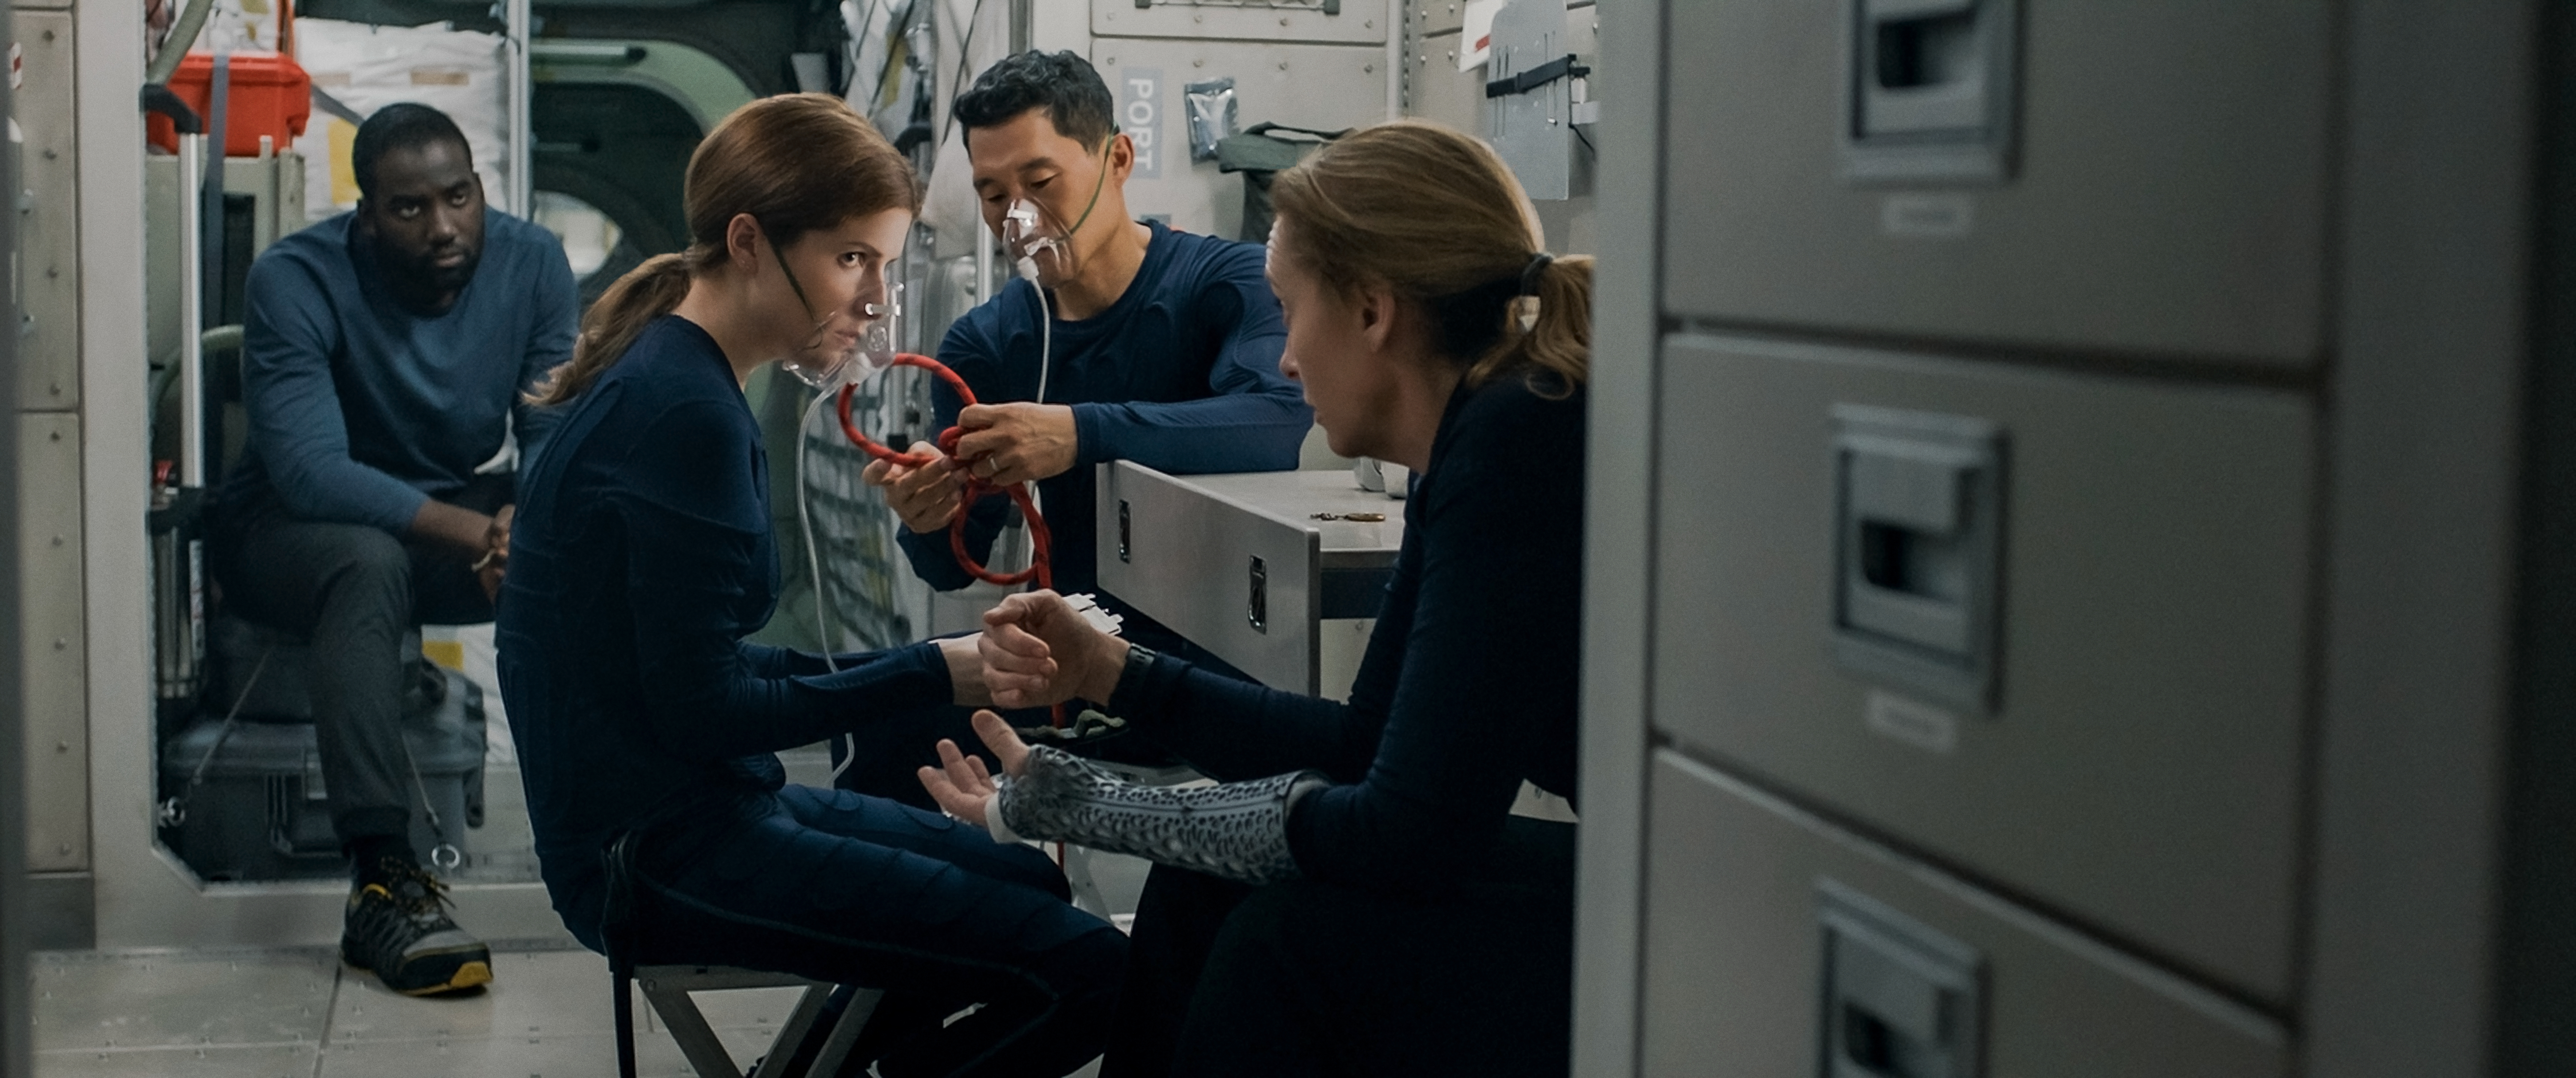 Film Review of Stowaway starring Shamier Anderson, Anna Kendrick, Toni Colletee and Daniel Dae Kim